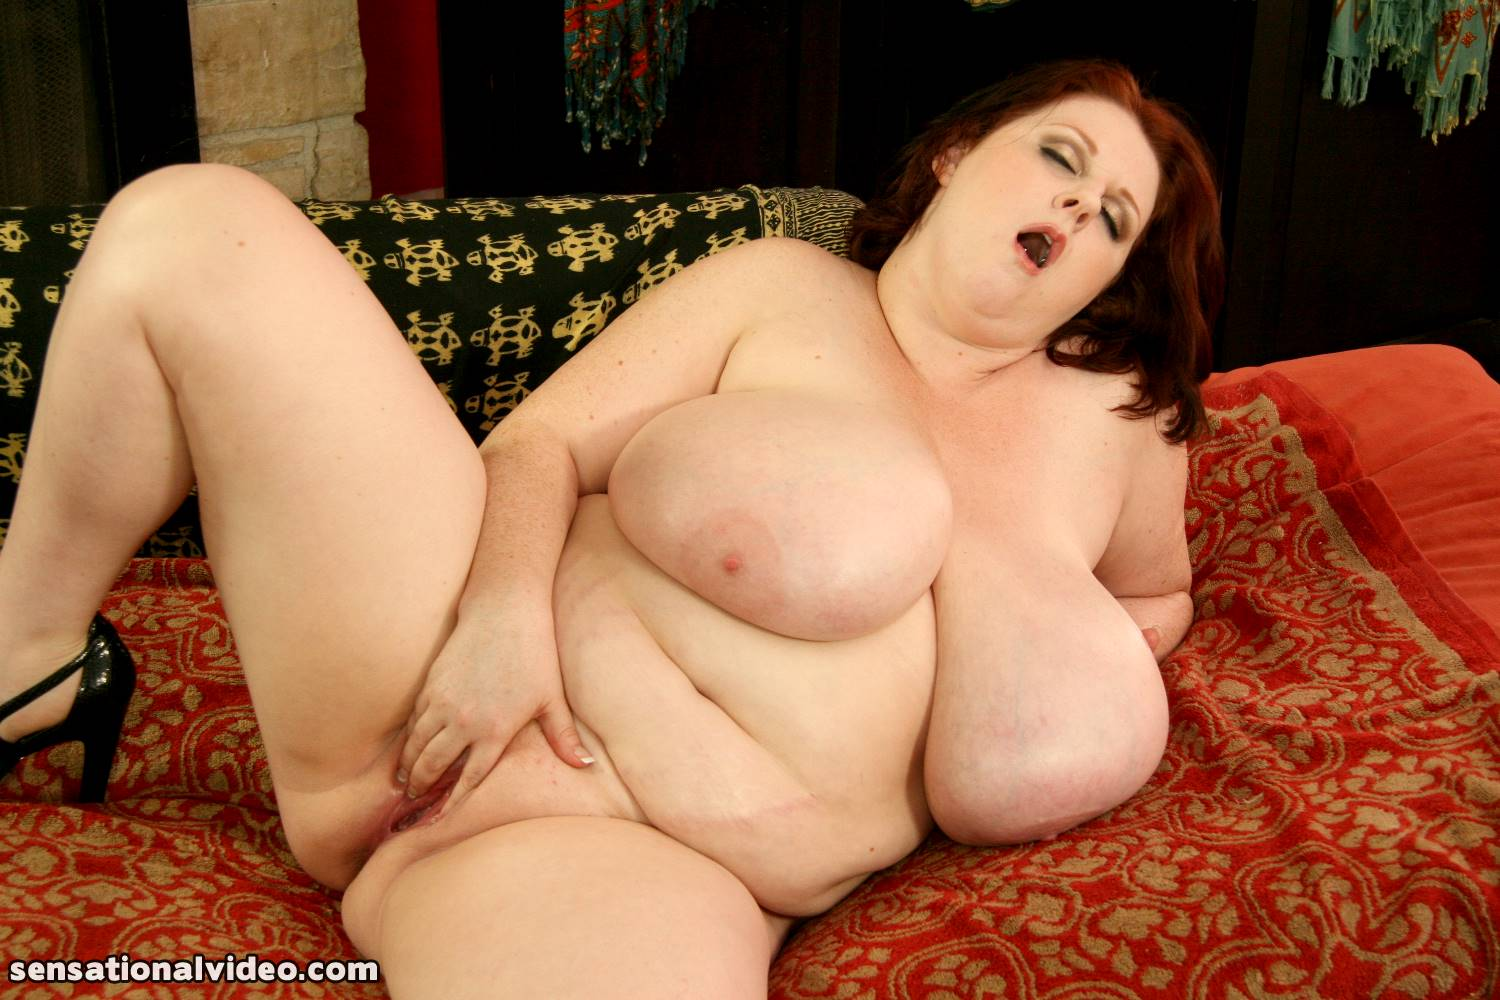 Bbw masturbation videos blogspot something is